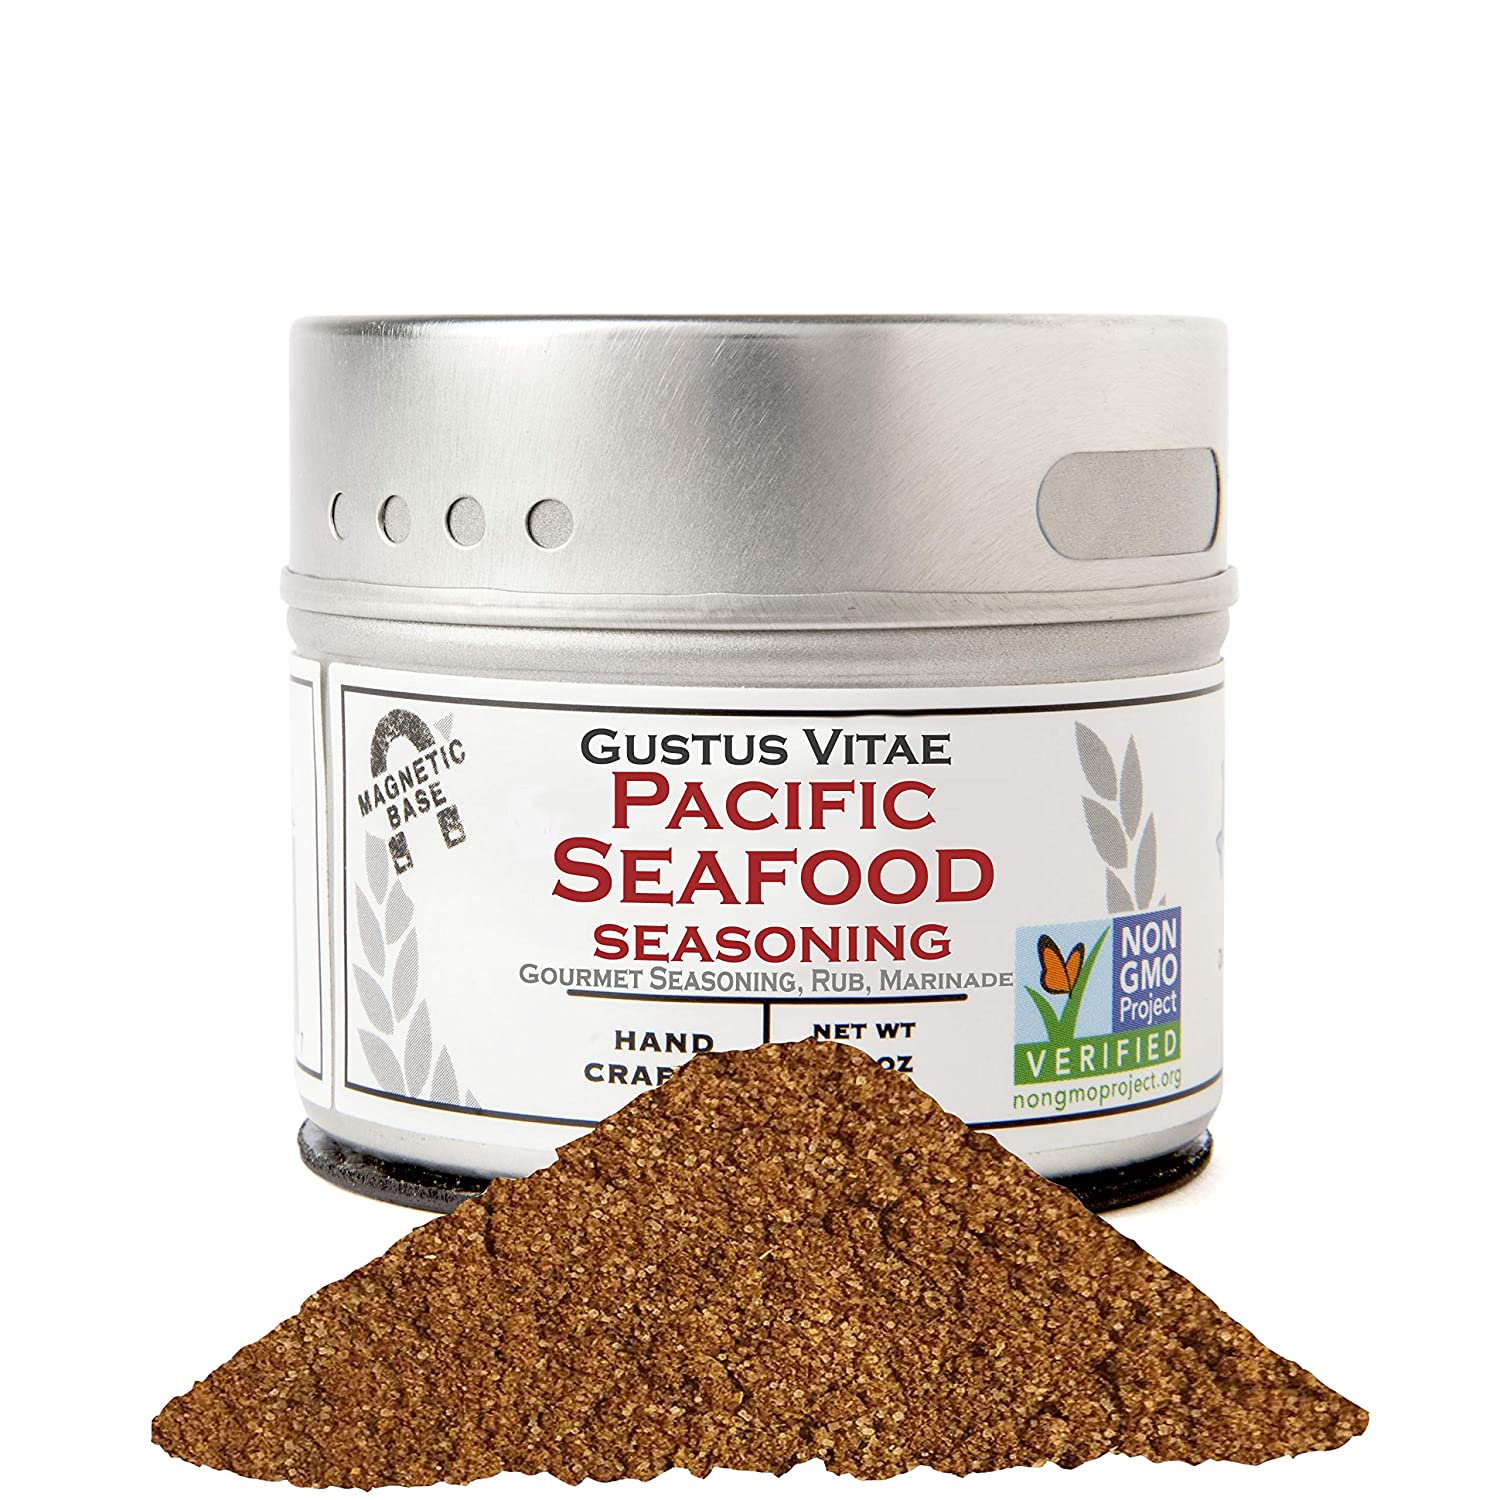 Pacific Seafood Seasoning - Authentic Artisanal Gourmet Spice Mix - Non GMO Project Verified - 2.3 oz - Small Batch - Magnetic Tin - Gustus Vitae